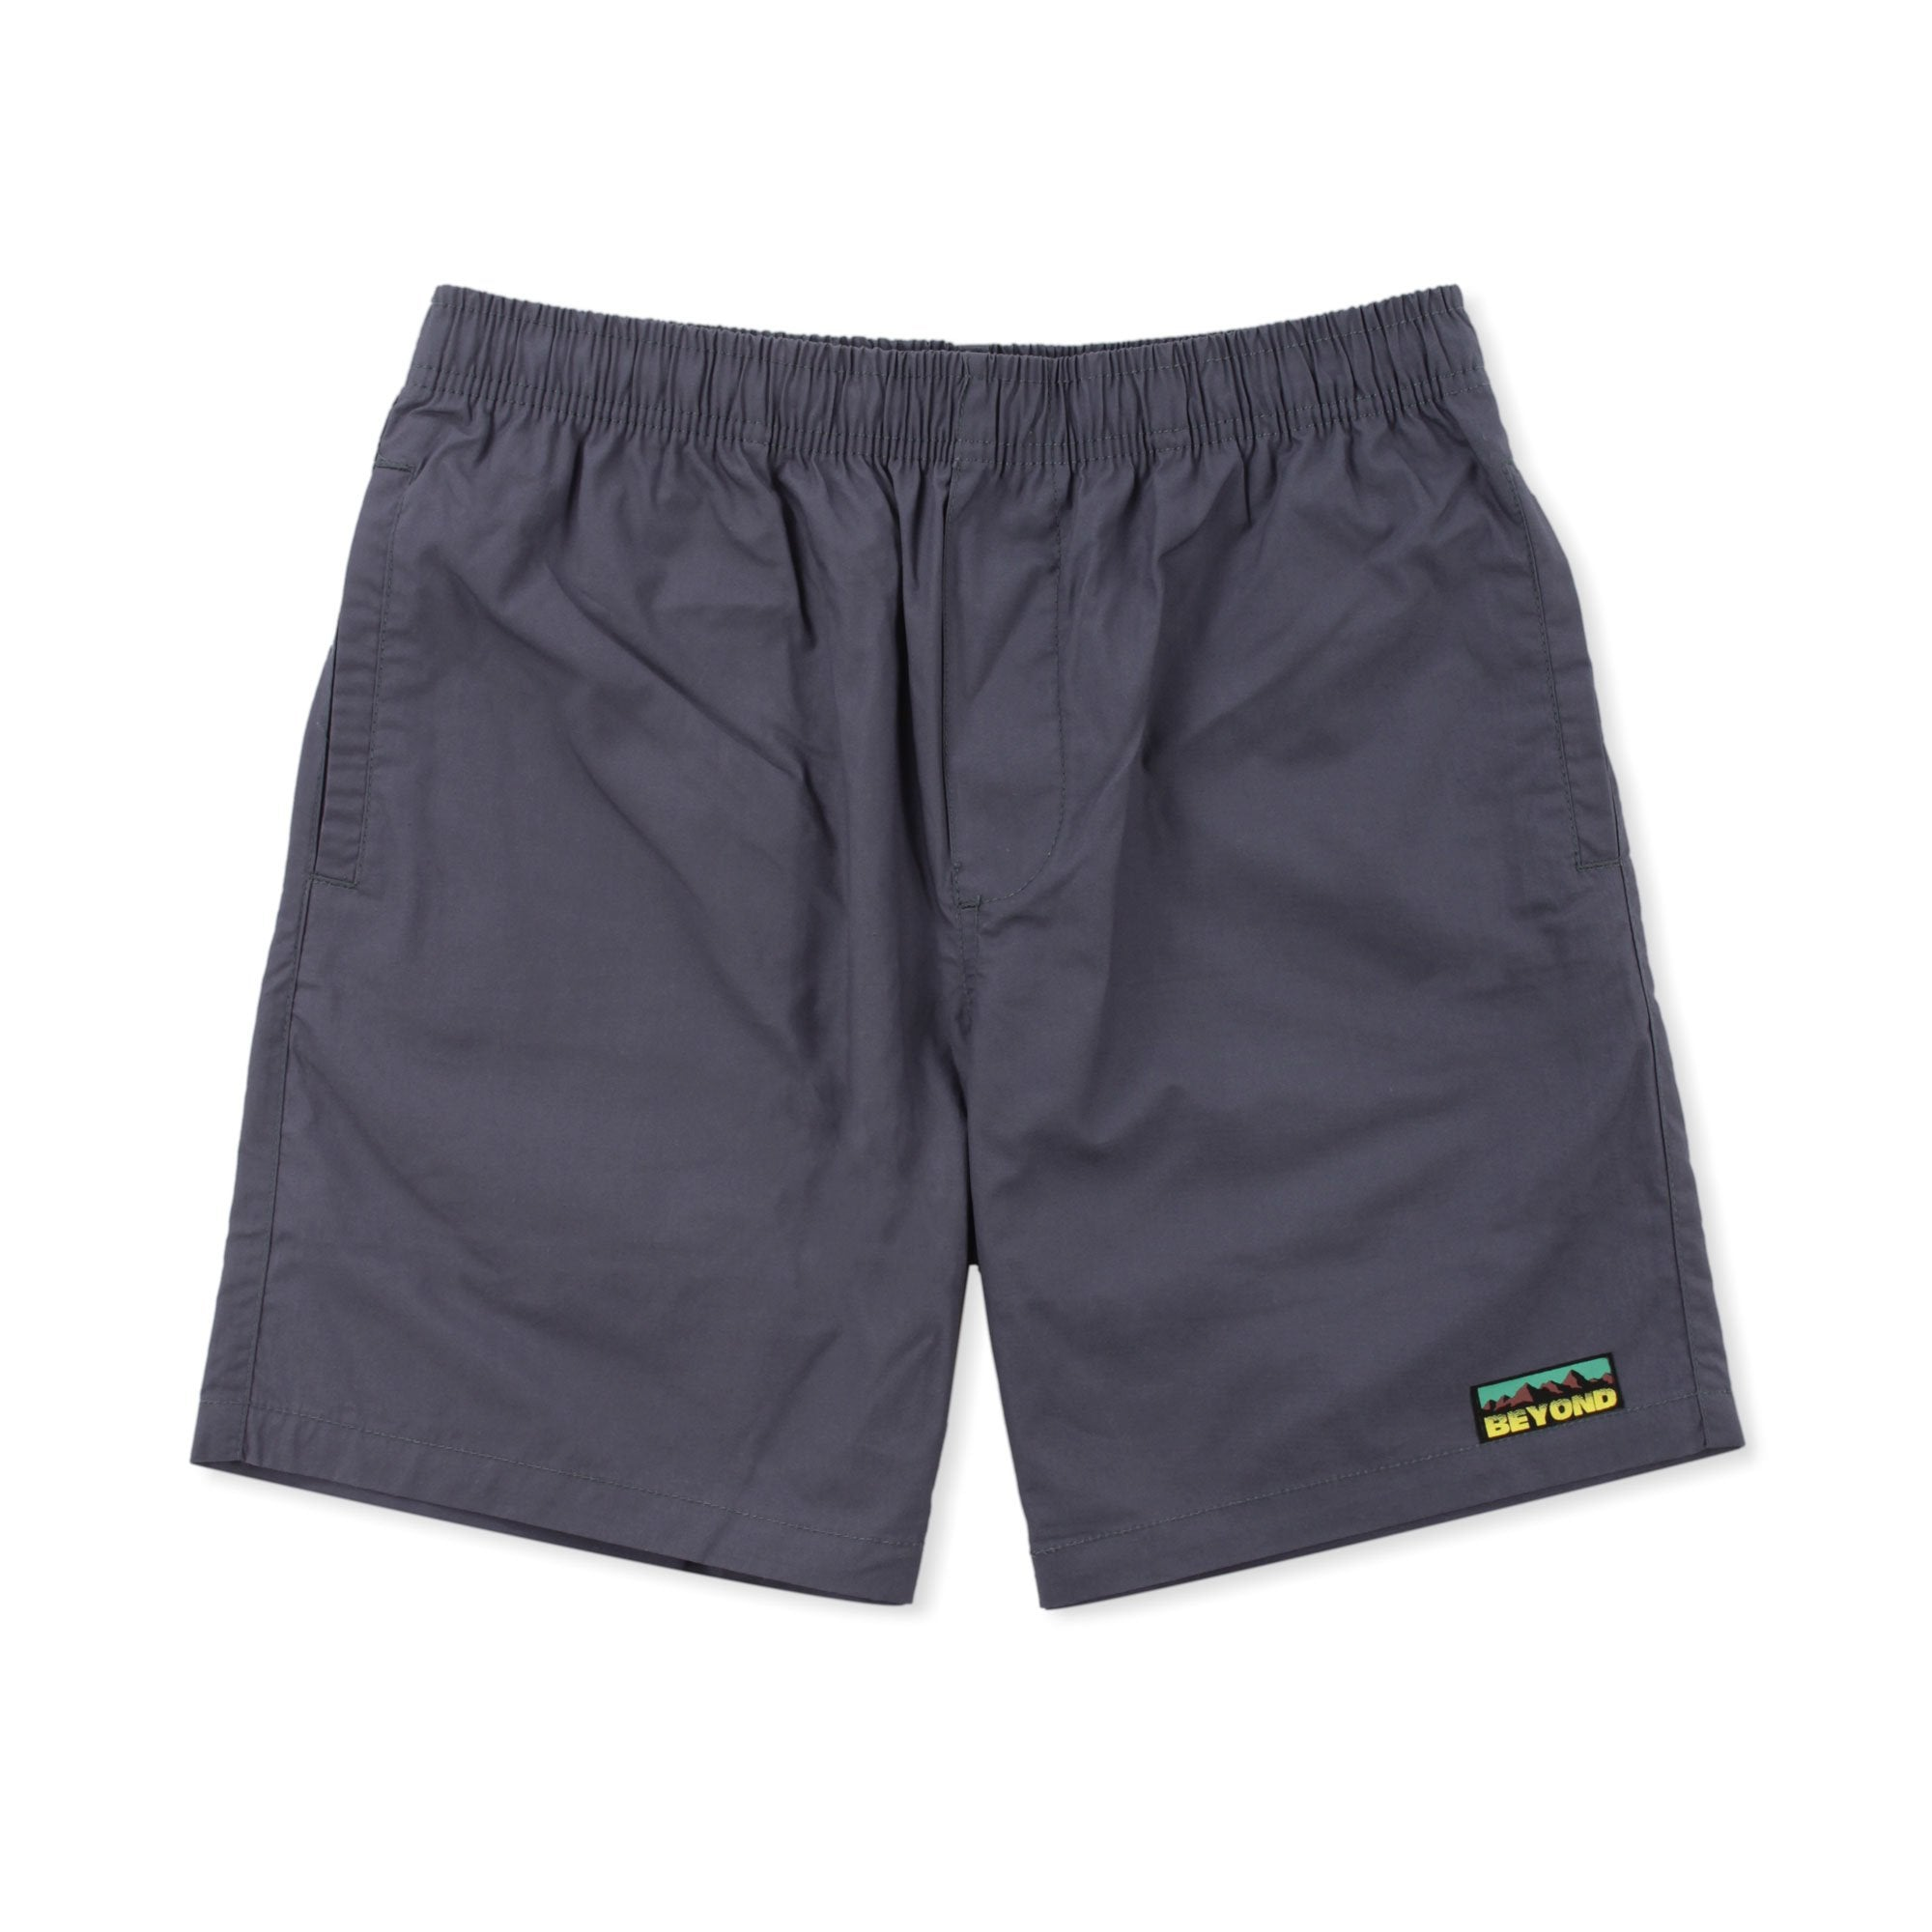 Beyond Patchemanjaro Shorts Product Photo #1